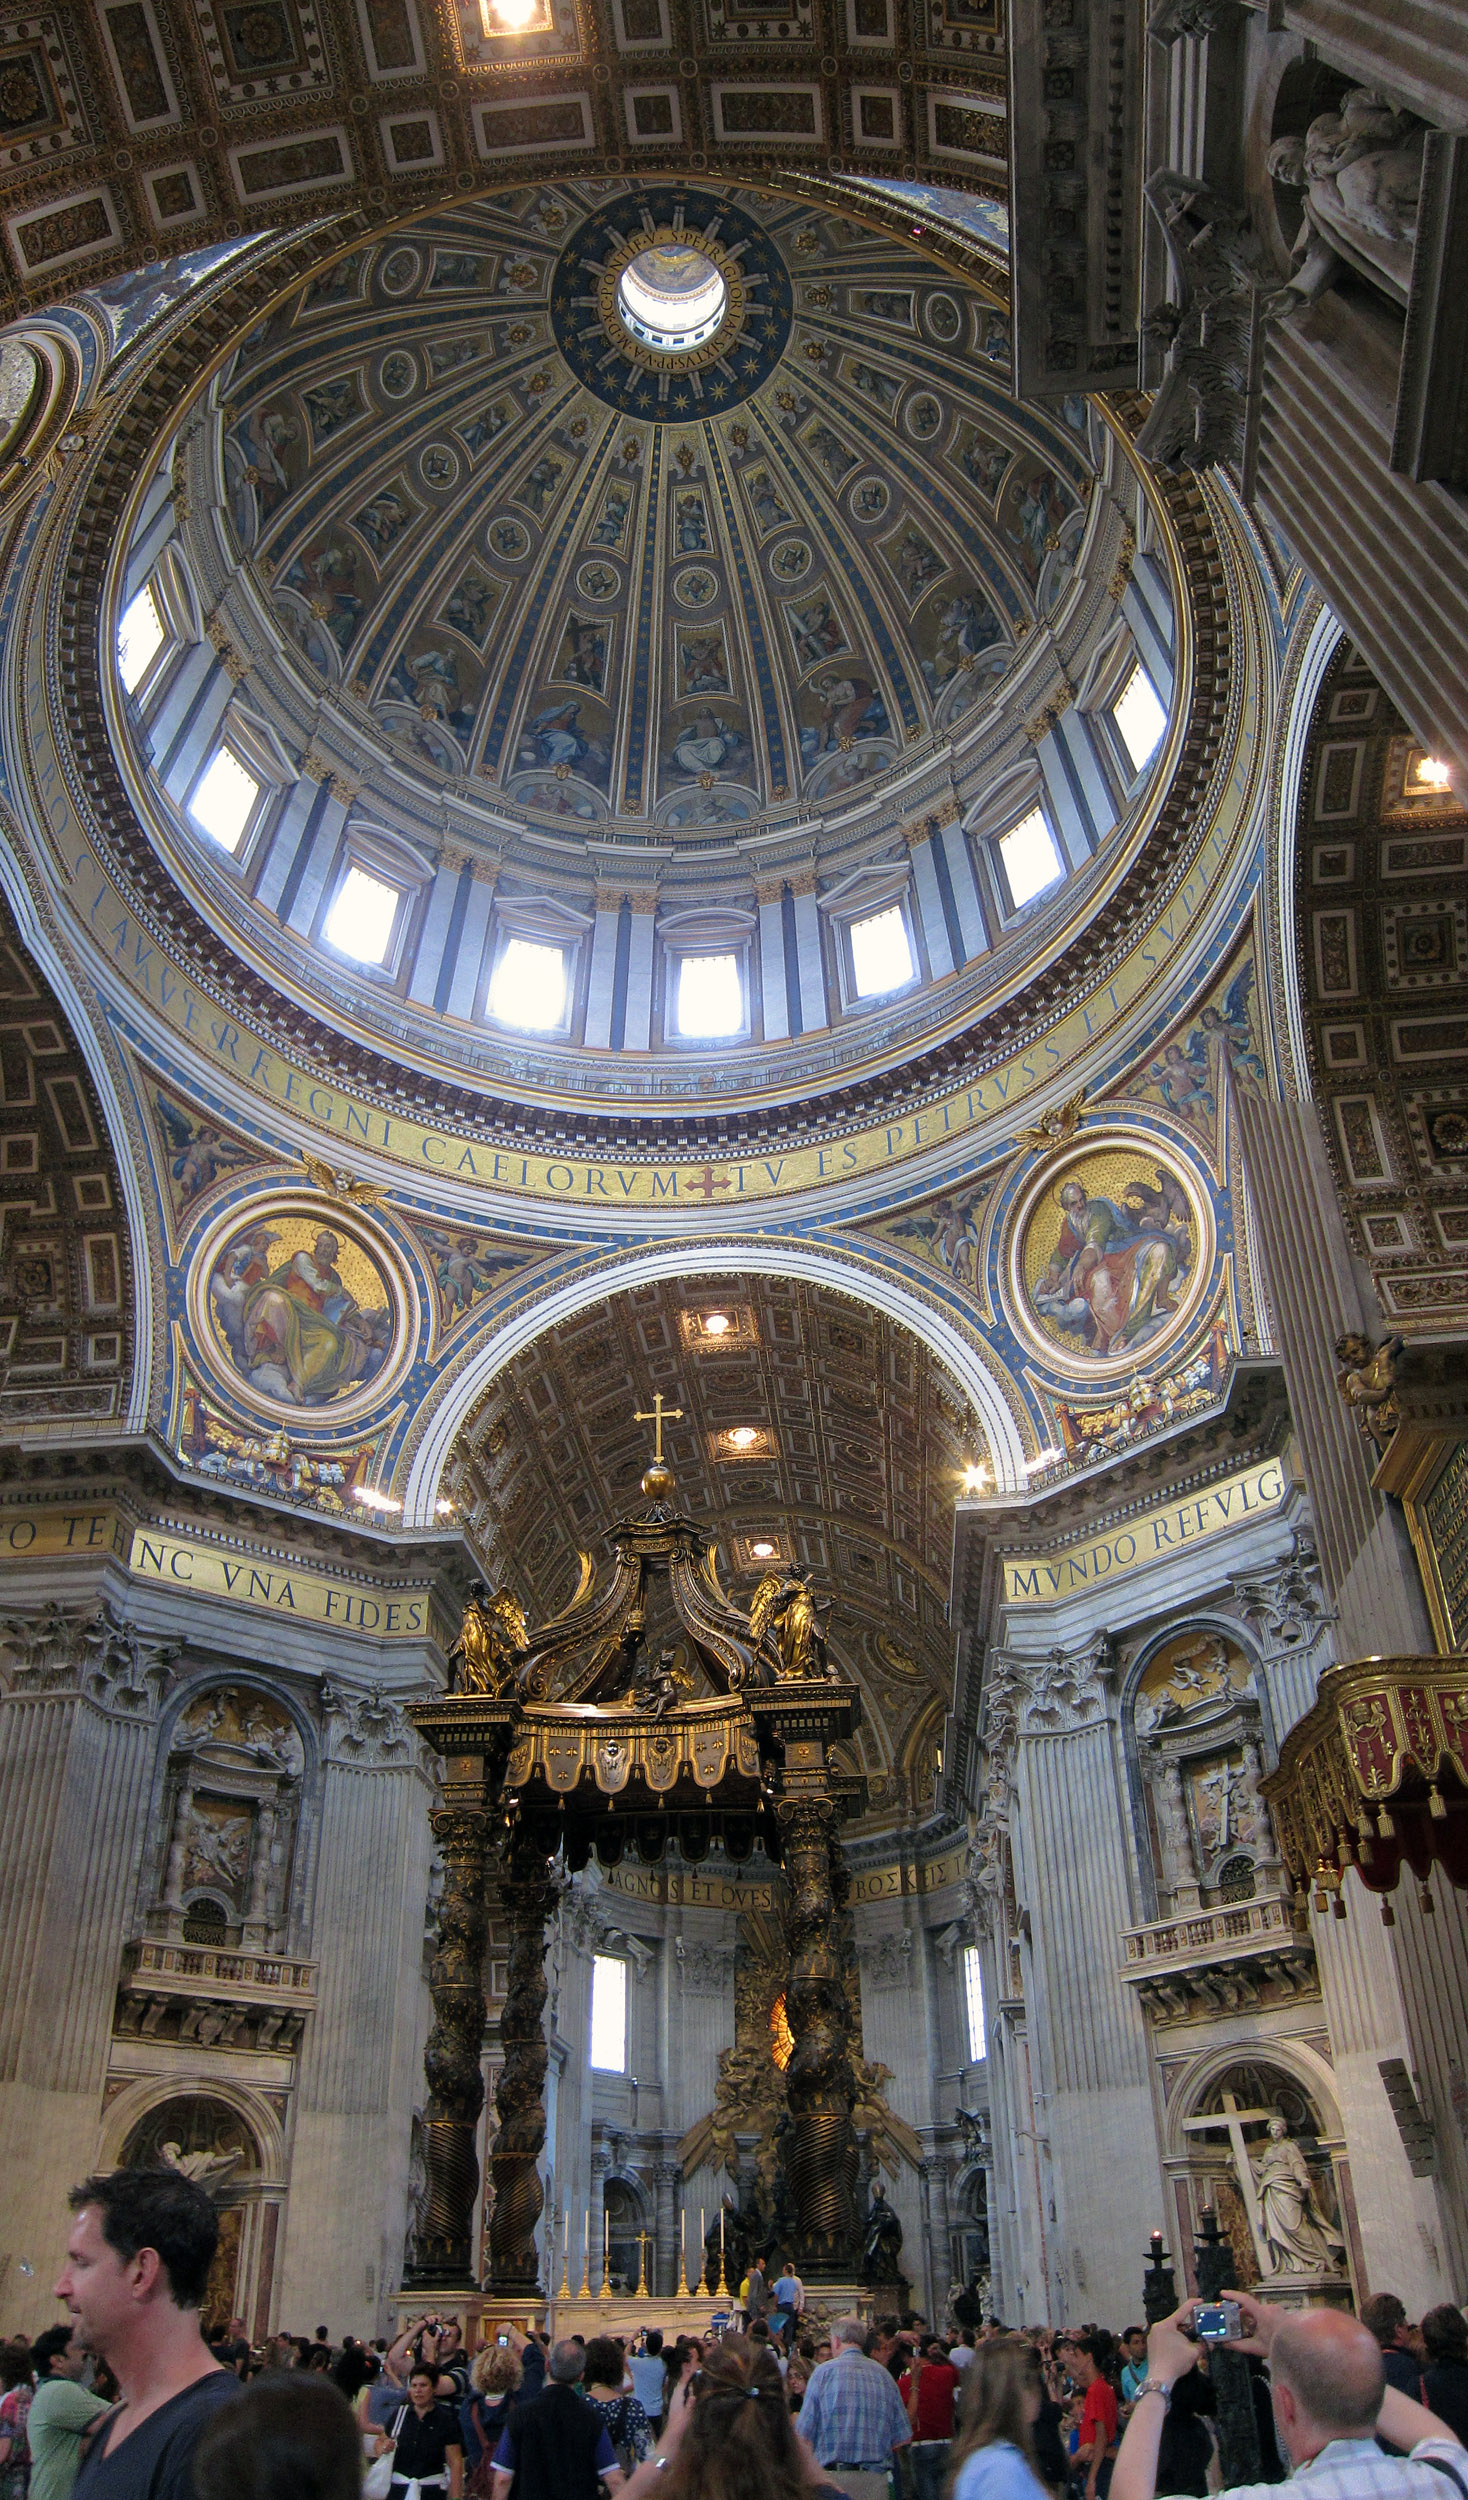 Michelangelo S Dome And Bernini S Baldacchino In Saint